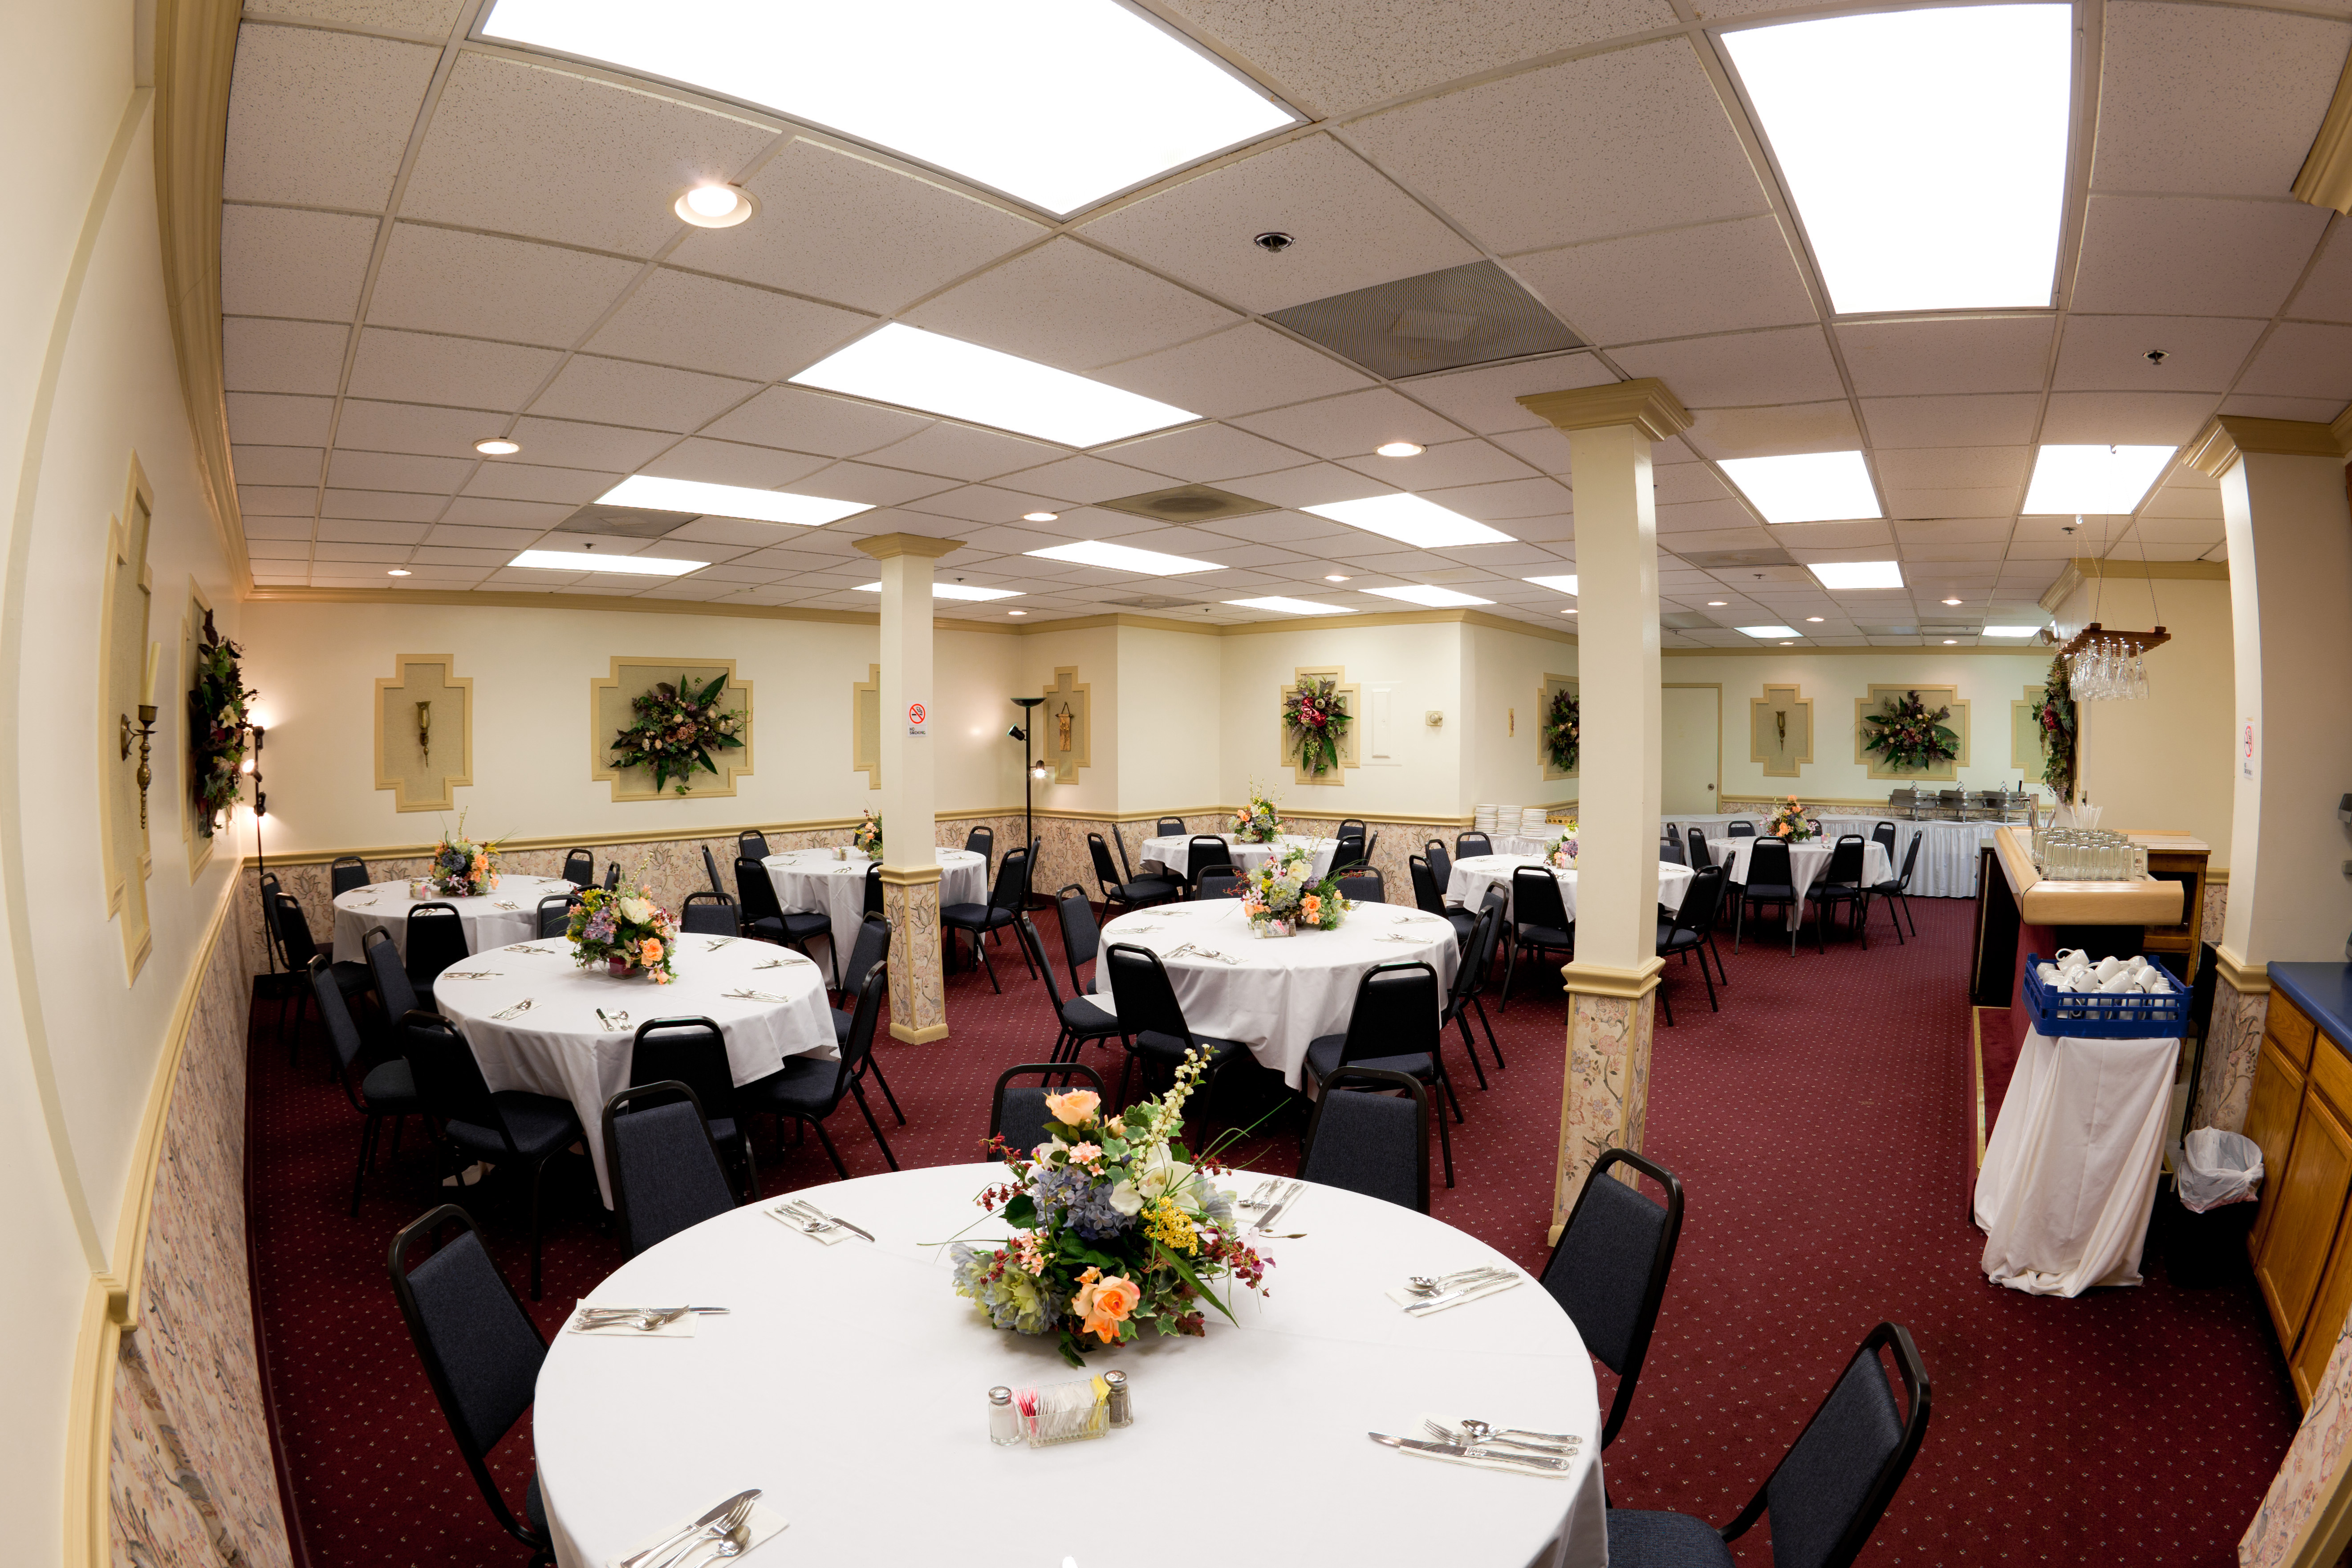 Jaden S Catering S Banquet Room Is An Ideal Place For Your